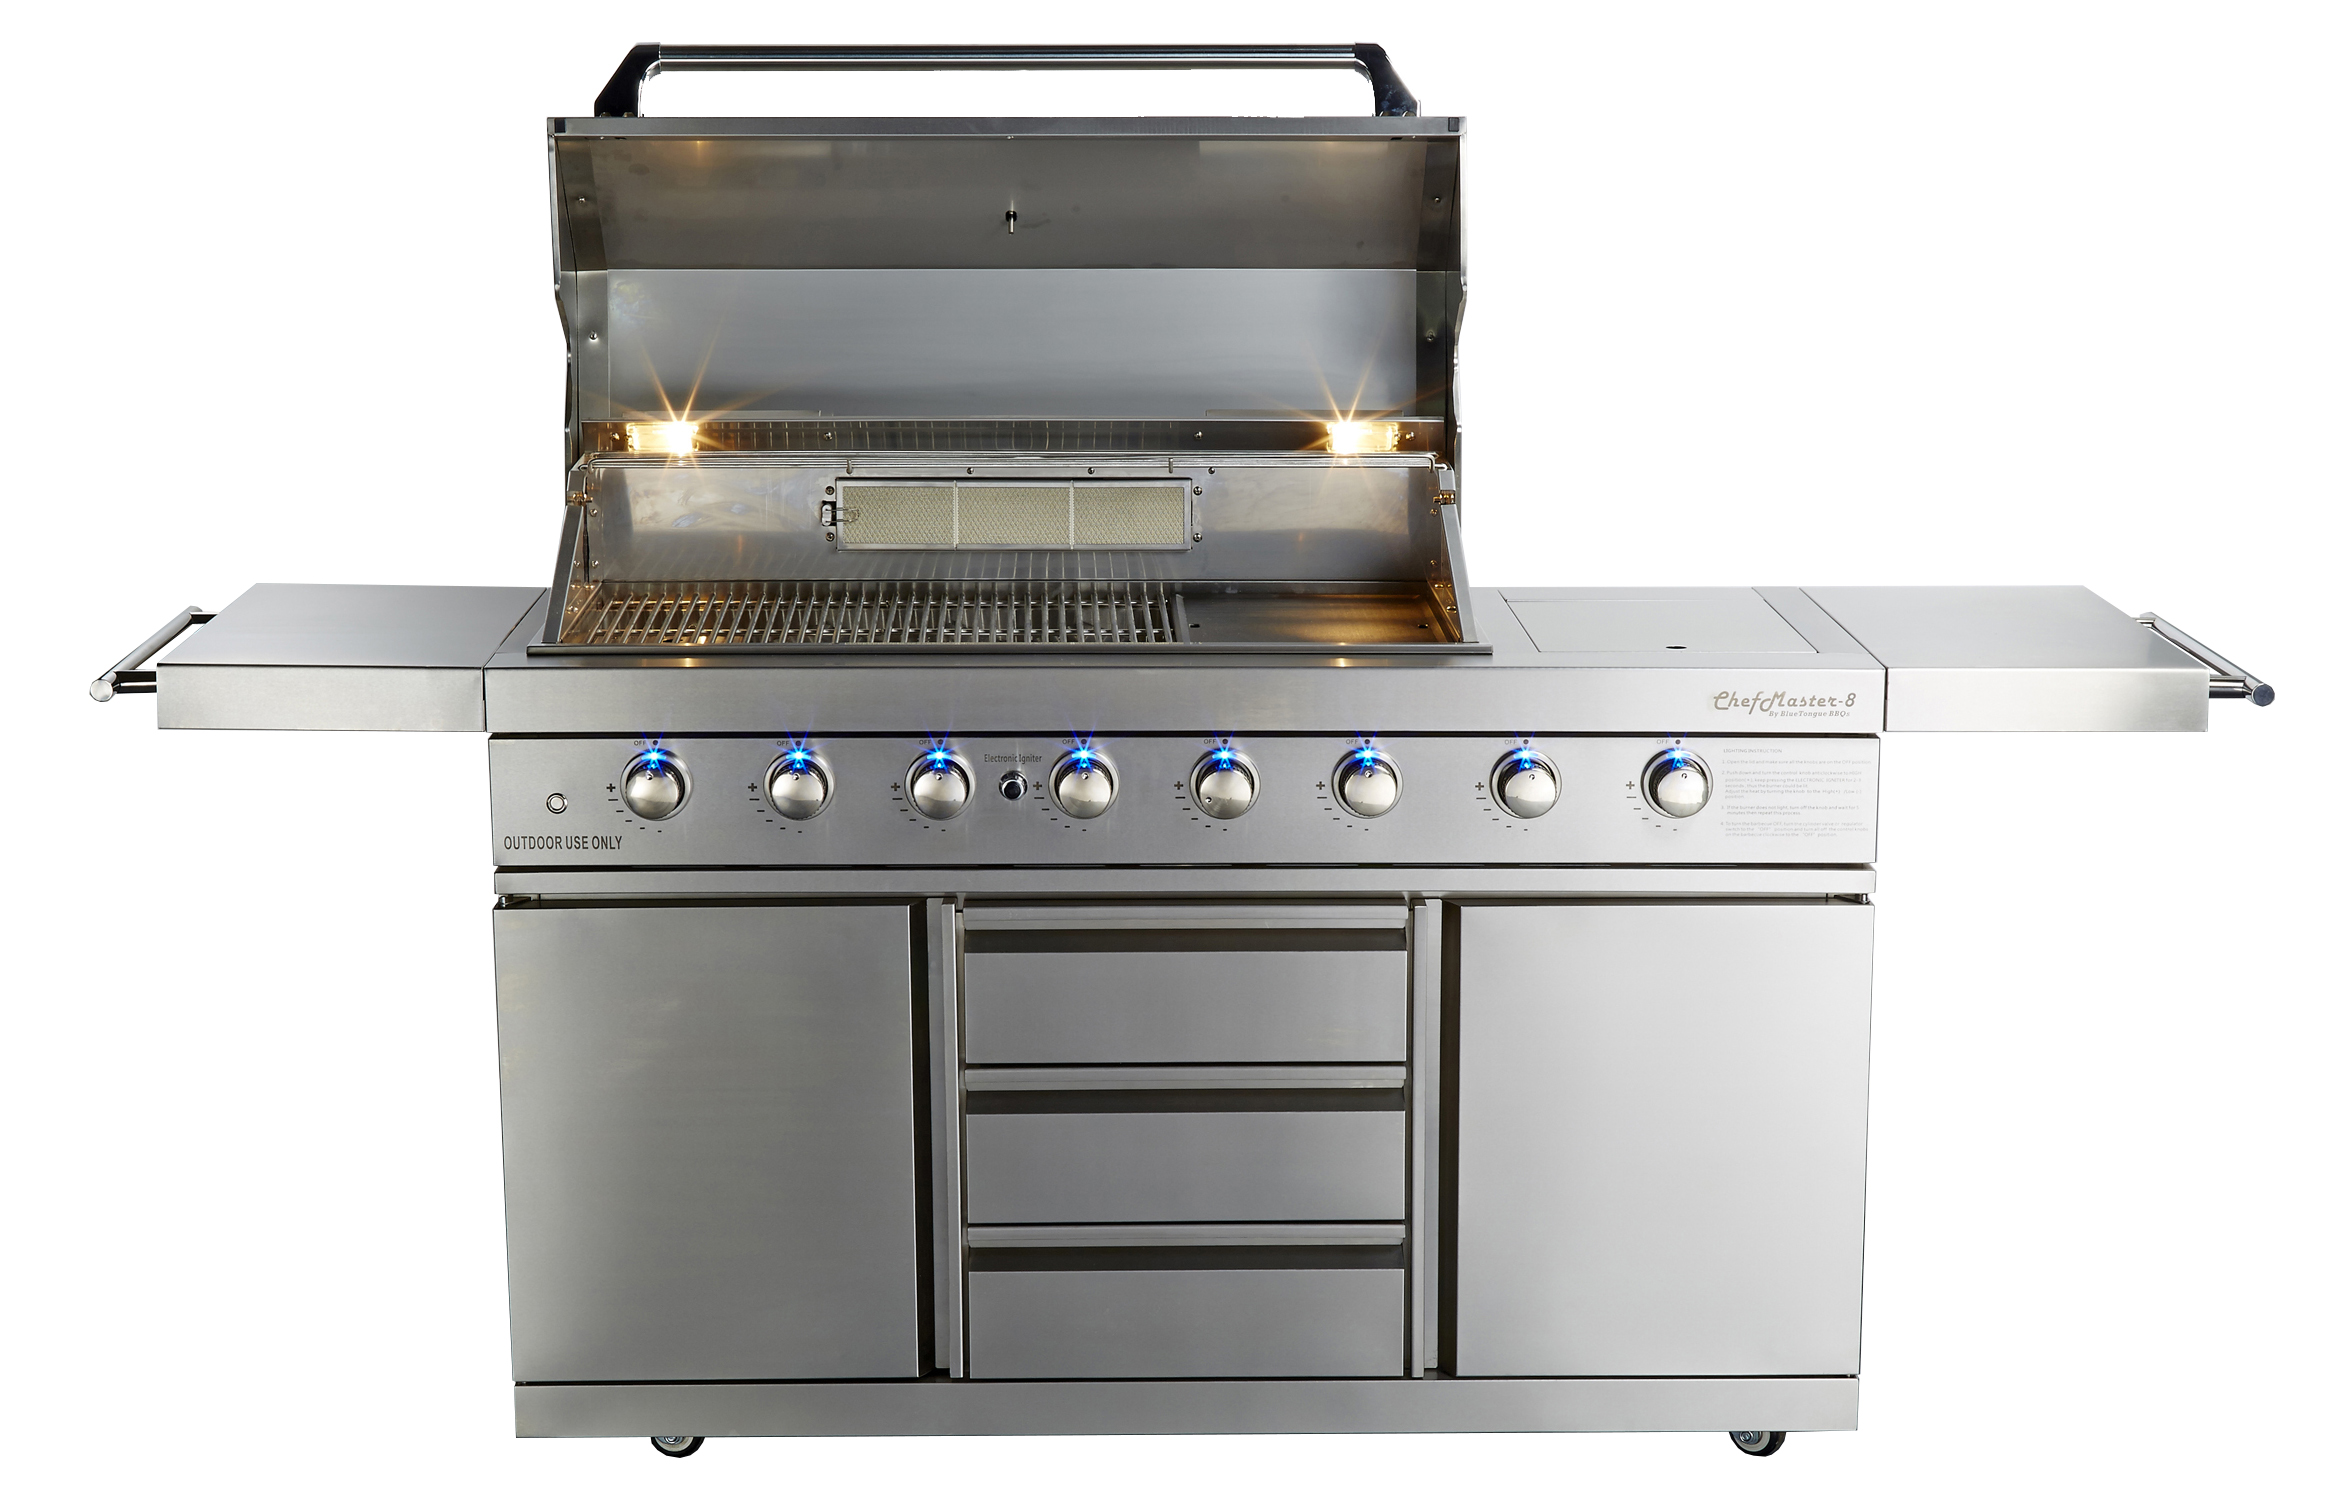 Freestanding grill with LED lighting